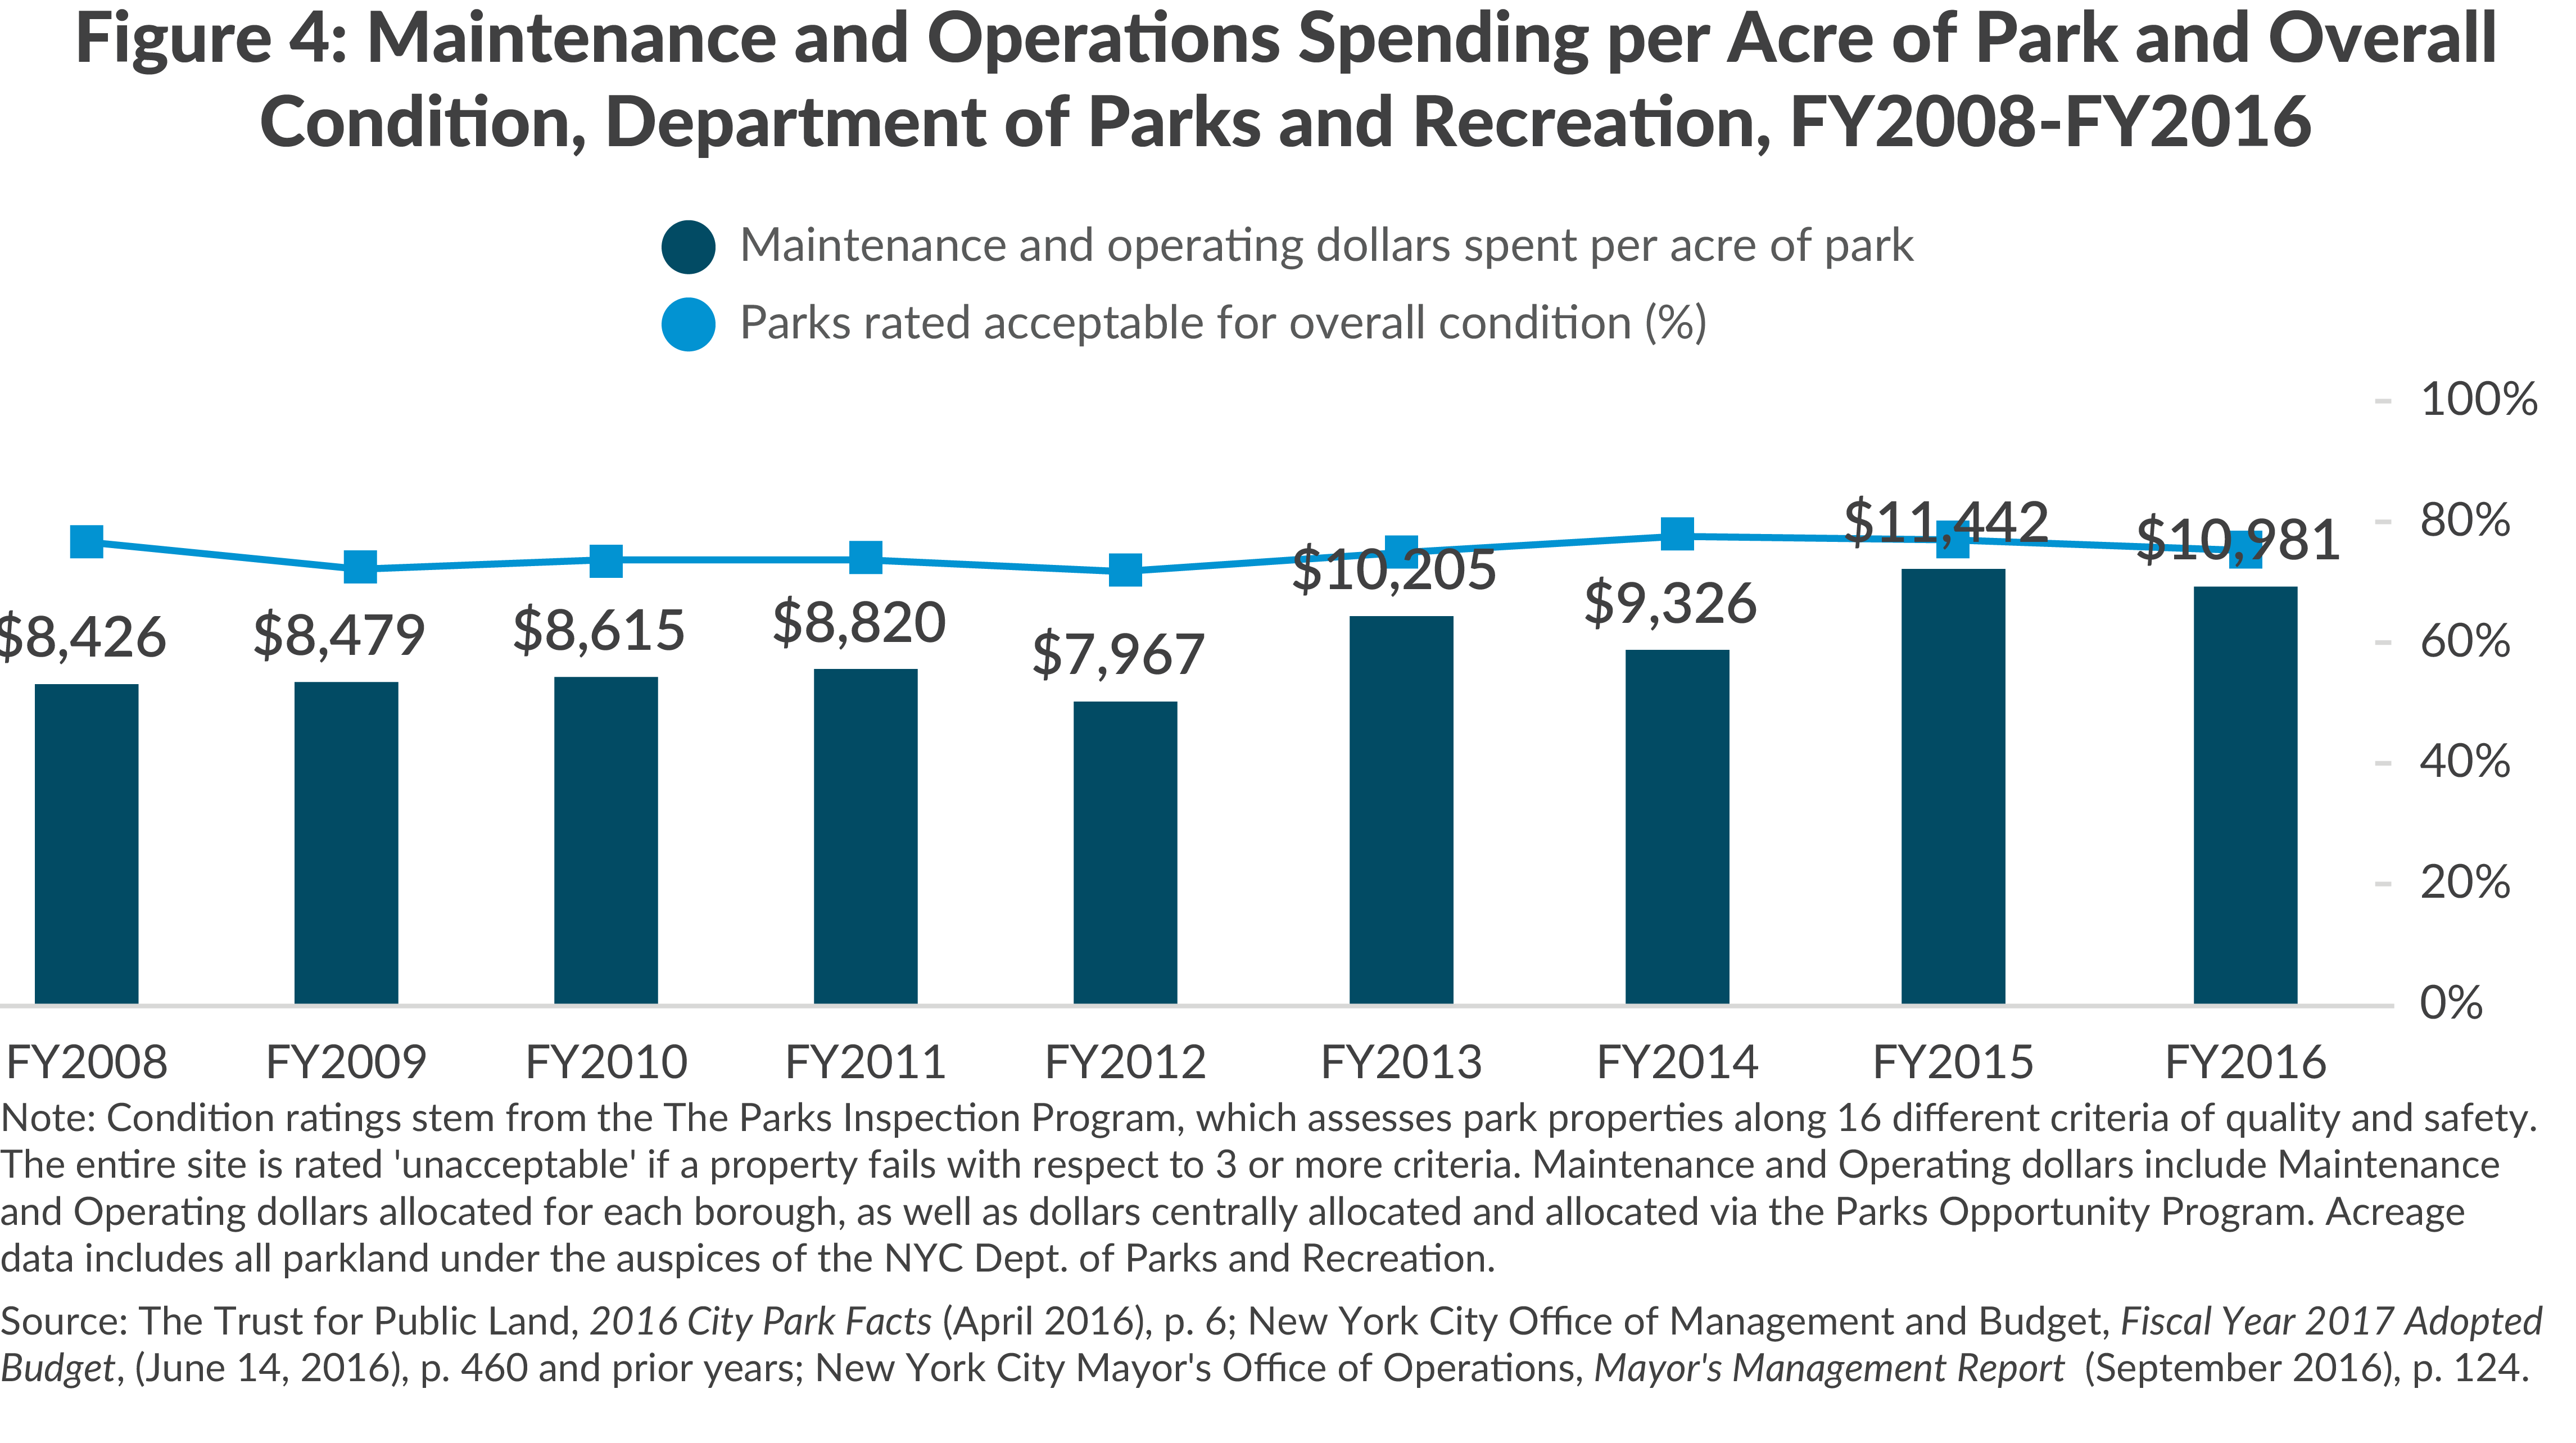 Figure 4: Maintenance and Operations Spending per Acre of Park and Overall Condition, Department of Parks and Recreation, FY2008-FY2016